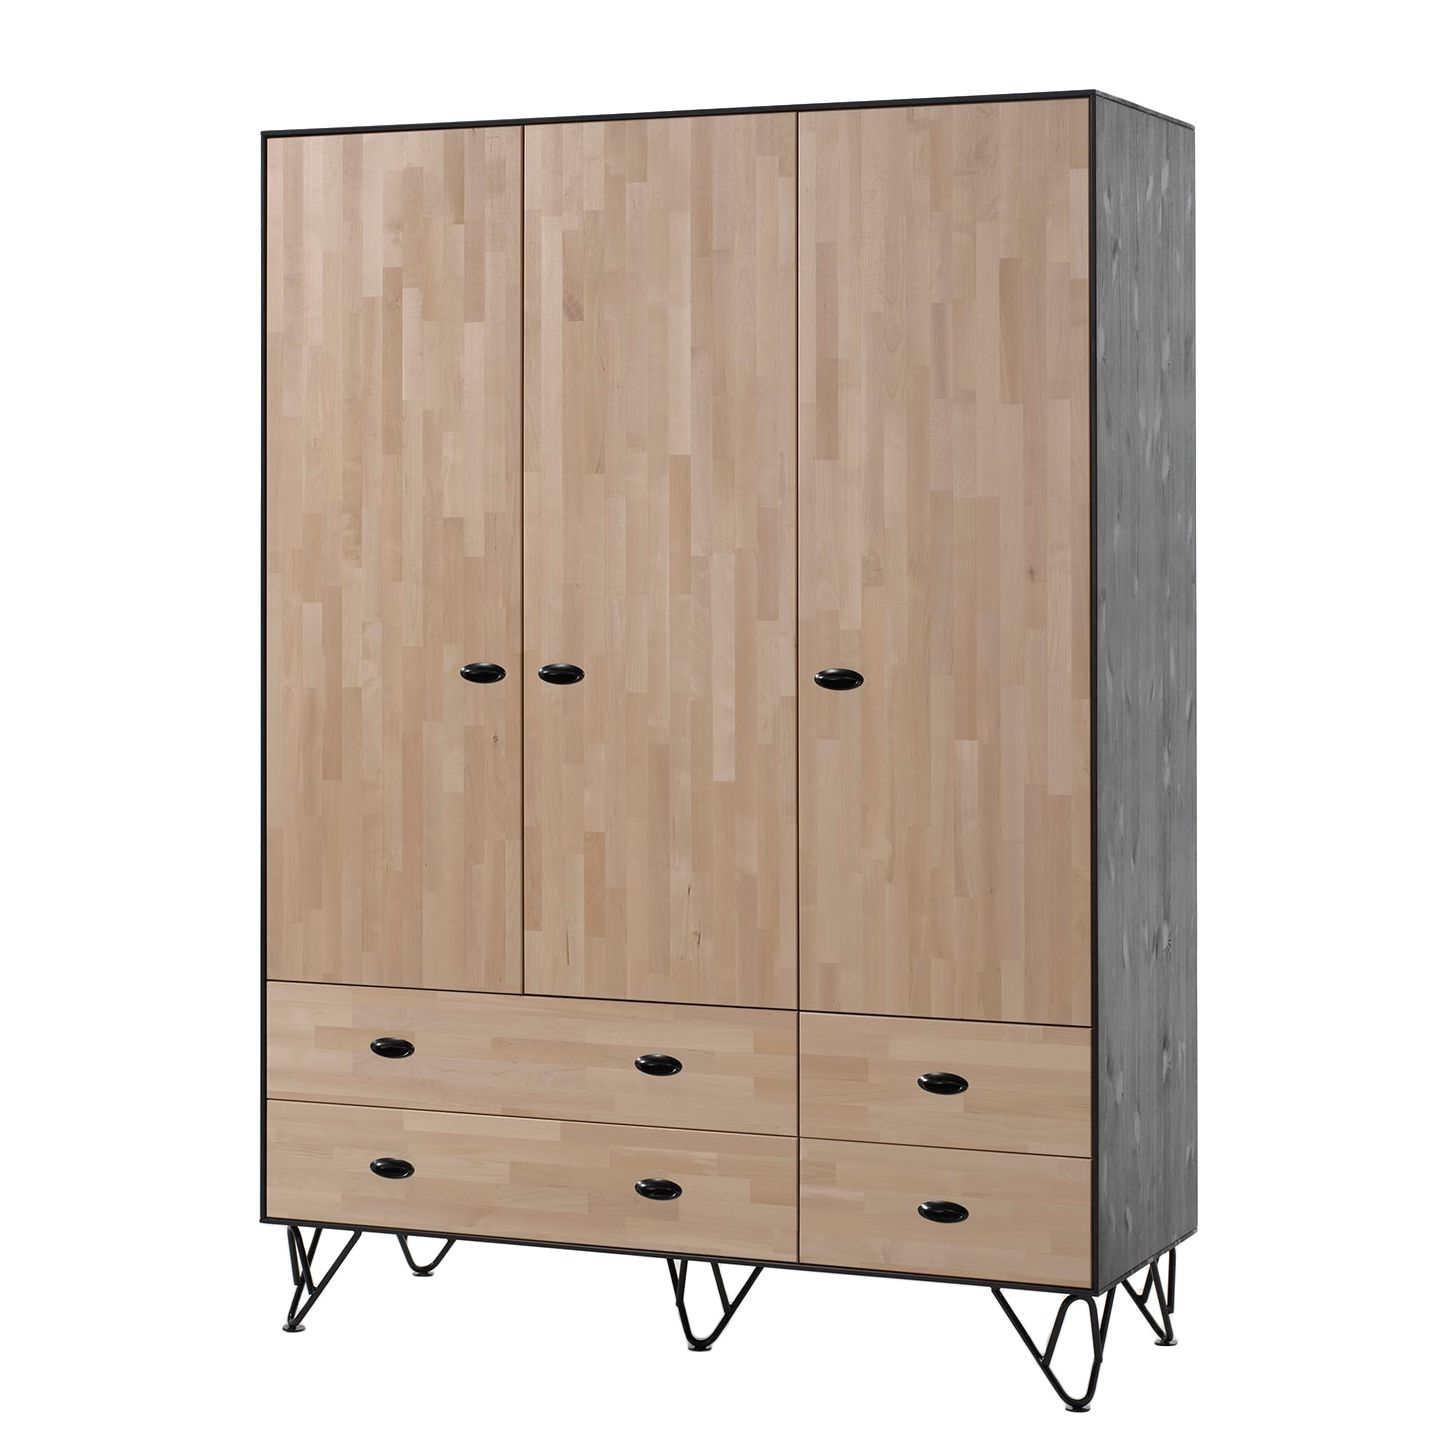 schrank 150 cm breit excellent pax schrank mit schiebetren cm neuwertig with schrank 150 cm. Black Bedroom Furniture Sets. Home Design Ideas